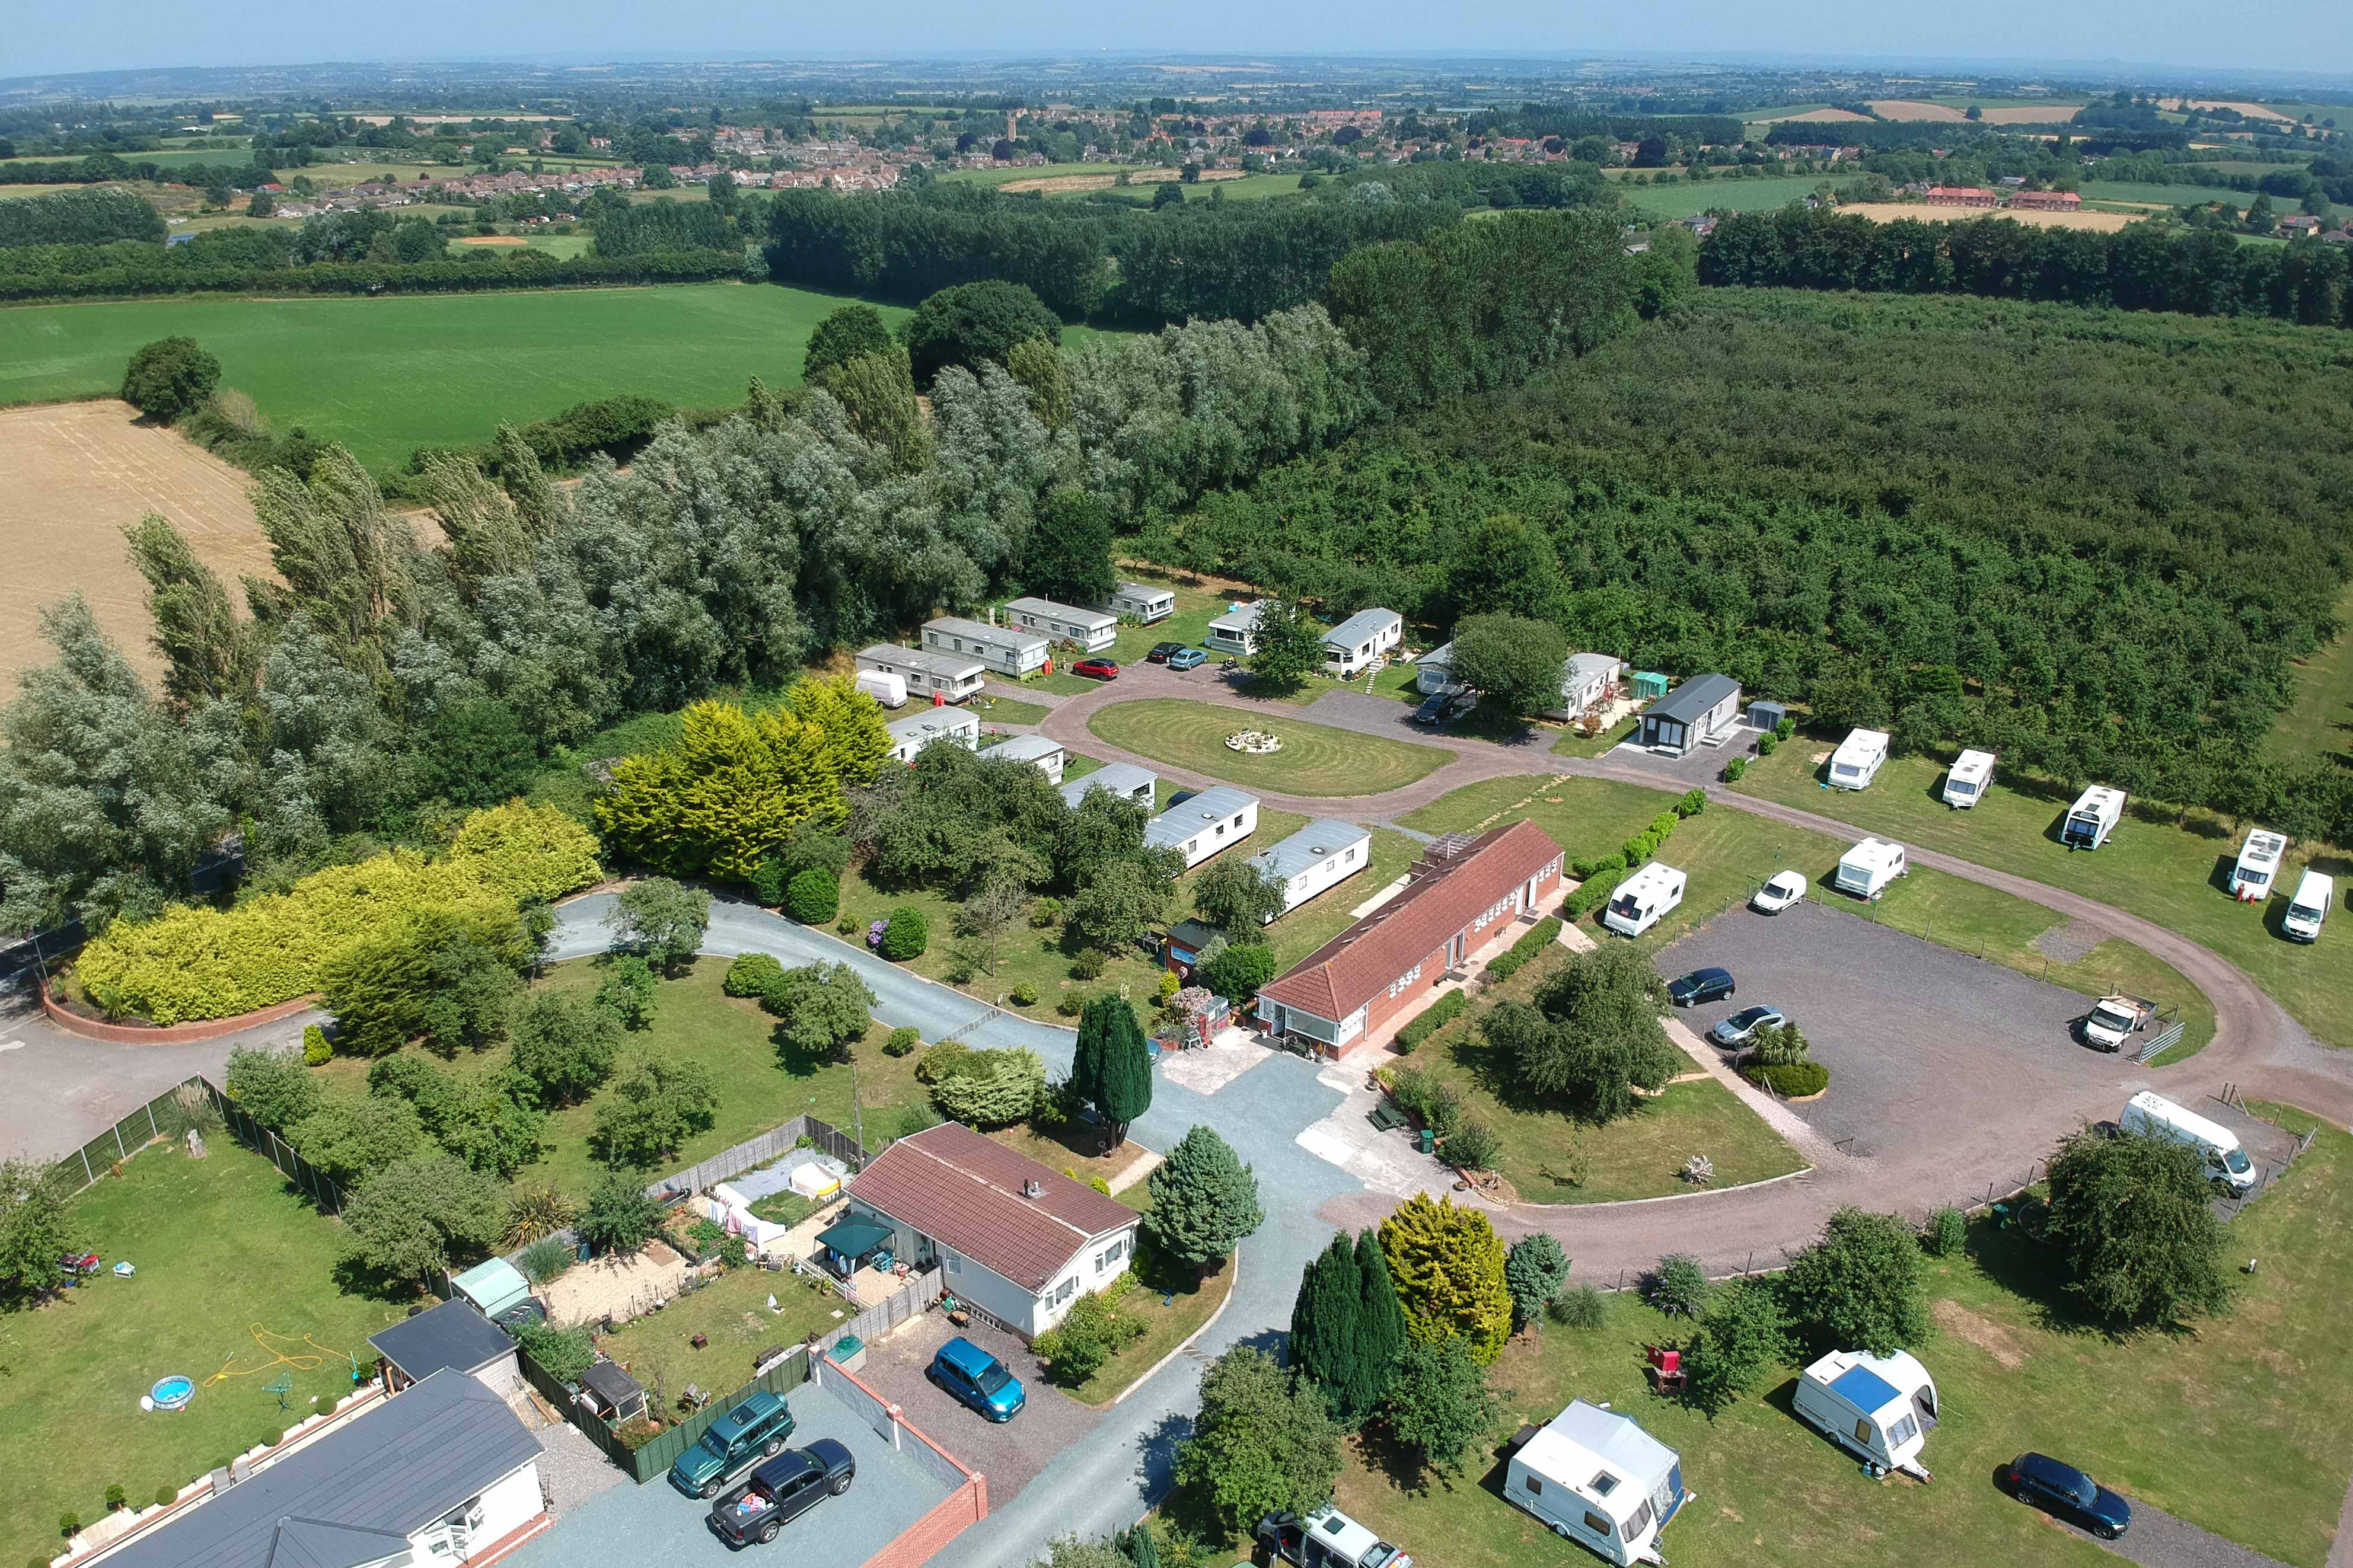 West Down Orchard Touring & Camping Park, South Petherton, Somerset